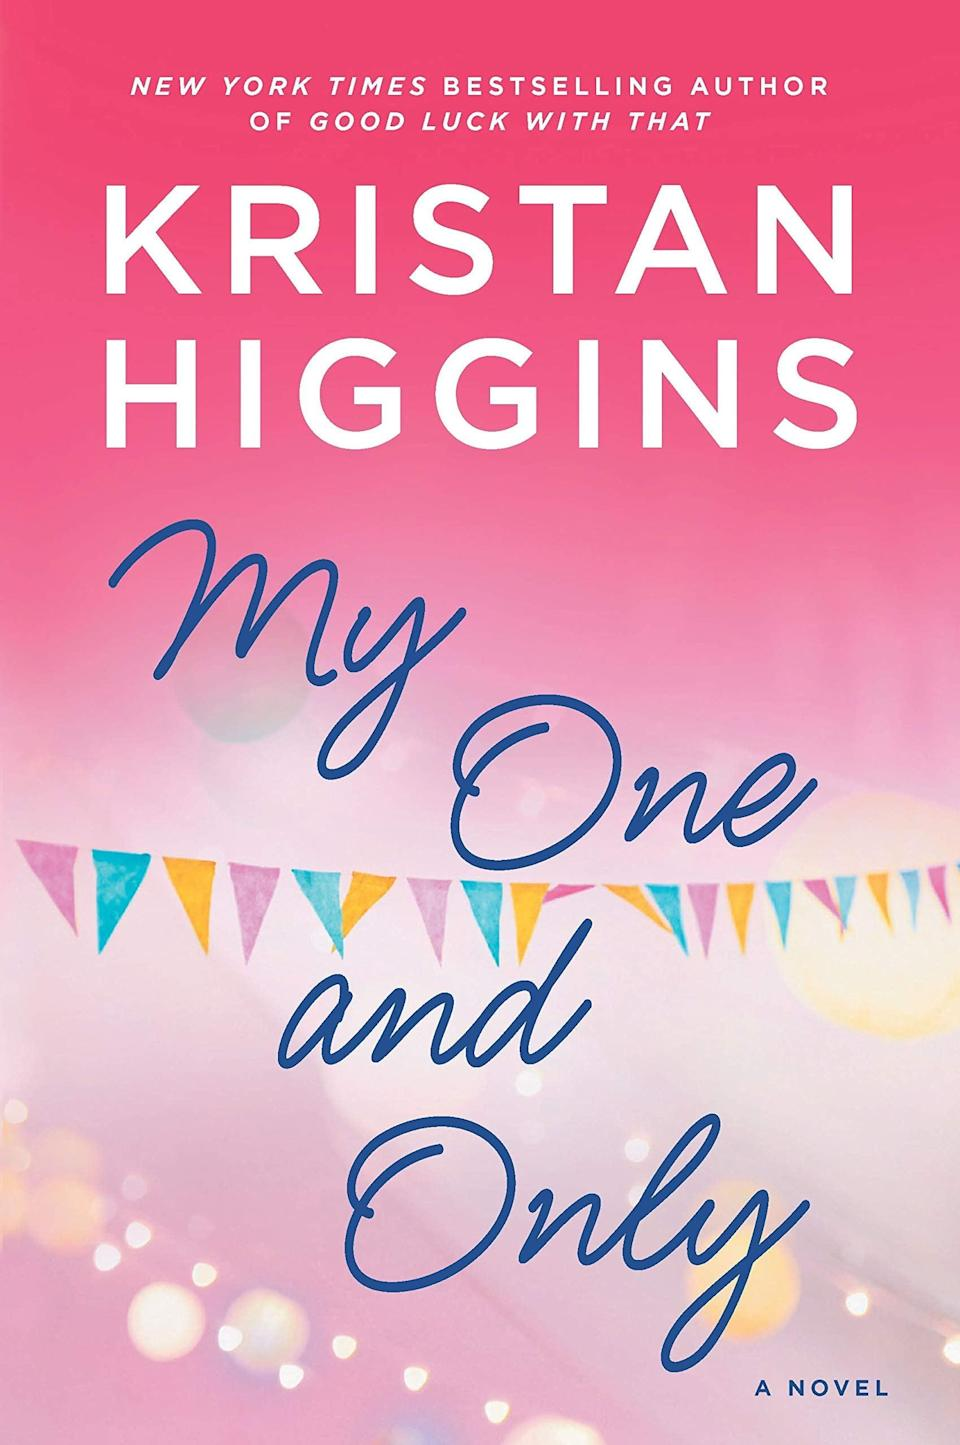 """<p>For me, Kristan Higgins is the queen of writing intense, all-consuming love stories, and this book is one of my favorites. In <span><strong>My One and Only</strong></span> ($10), Harper and Nick are ex-husband and wife who haven't been in contact for 12 years. When their younger siblings announce their surprise <a class=""""link rapid-noclick-resp"""" href=""""https://www.popsugar.co.uk/Wedding"""" rel=""""nofollow noopener"""" target=""""_blank"""" data-ylk=""""slk:wedding"""">wedding</a>, not only does Harper have to face Nick (and her unresolved feelings) again, but she's also forced to take a cross-country road trip with him.</p> <p>I love how this story seamlessly combines laugh-out-loud scenes (a certain horseback-riding adventure gone wrong at the beginning of the book comes to mind) with more heart-wrenching moments between Harper and Nick and Harper and her family. It also ends with an unexpected grand romantic gesture that you won't soon forget.</p>"""